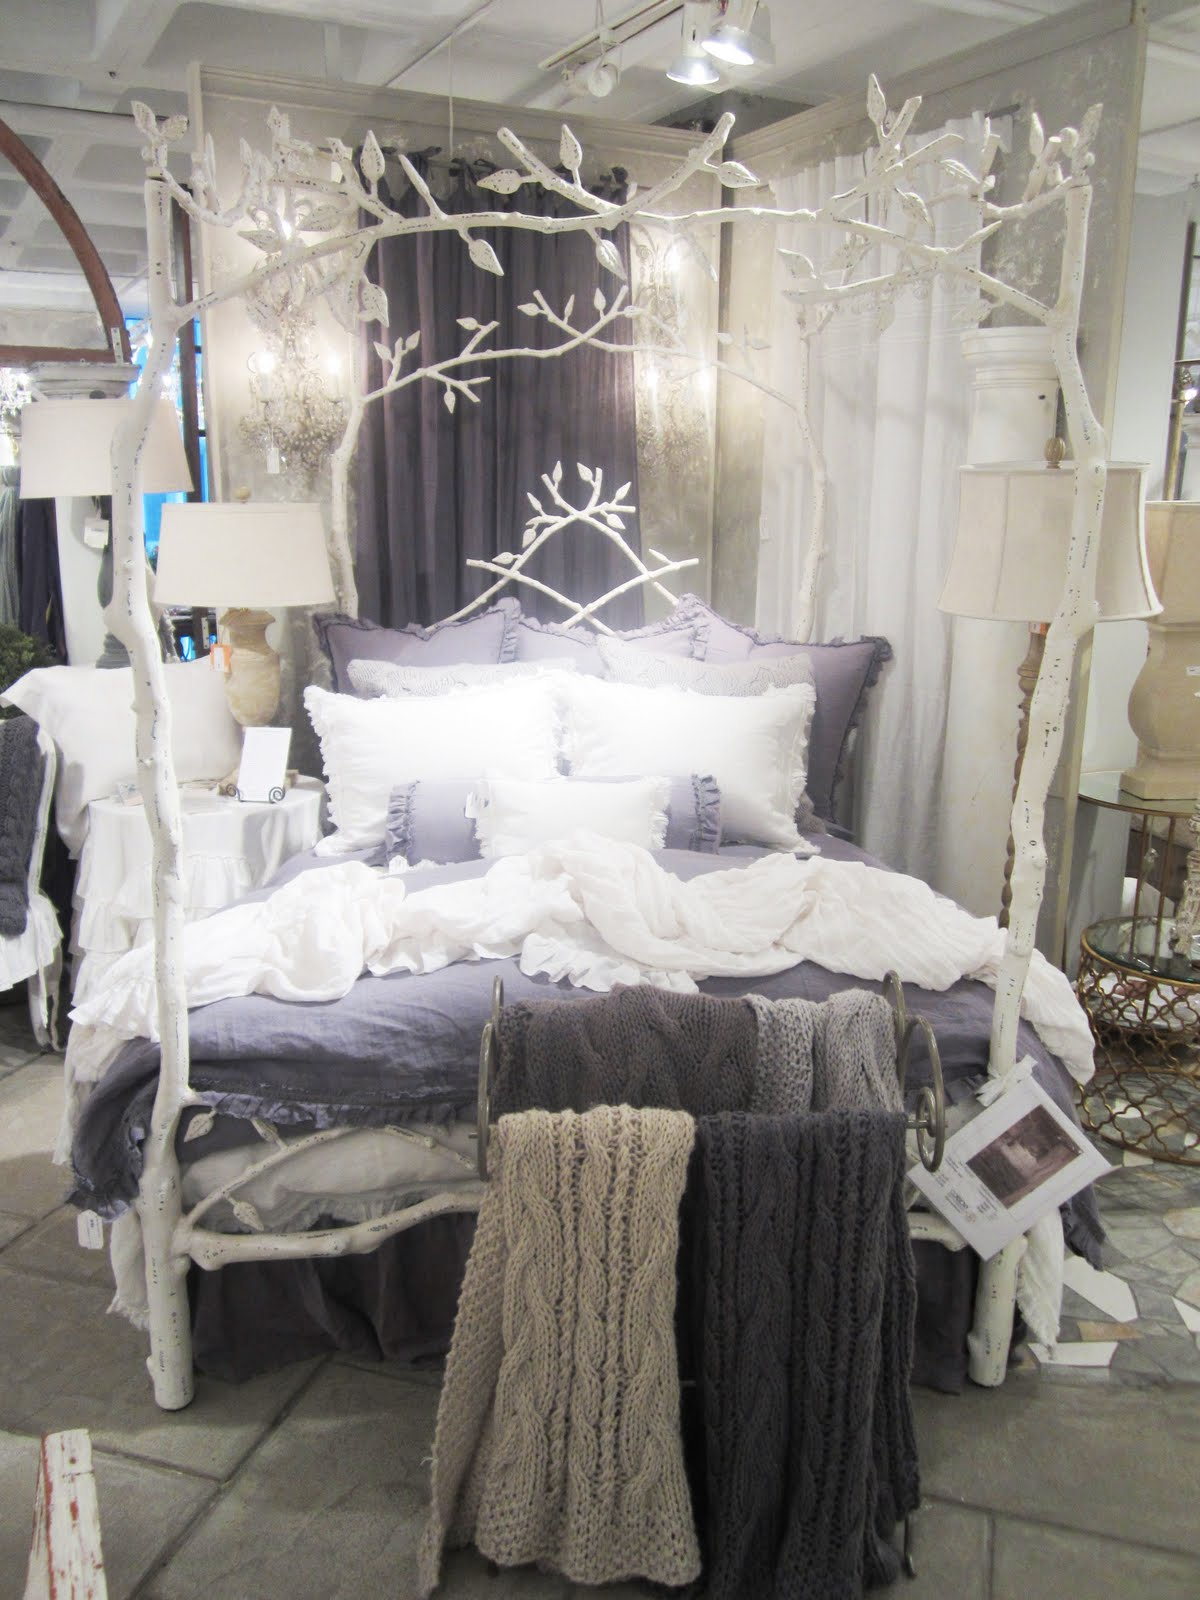 SHOP WATCH: HOME SWEET HOME - THE SPARKLE IN ATLANTA AT CMA! | COCOCOZY